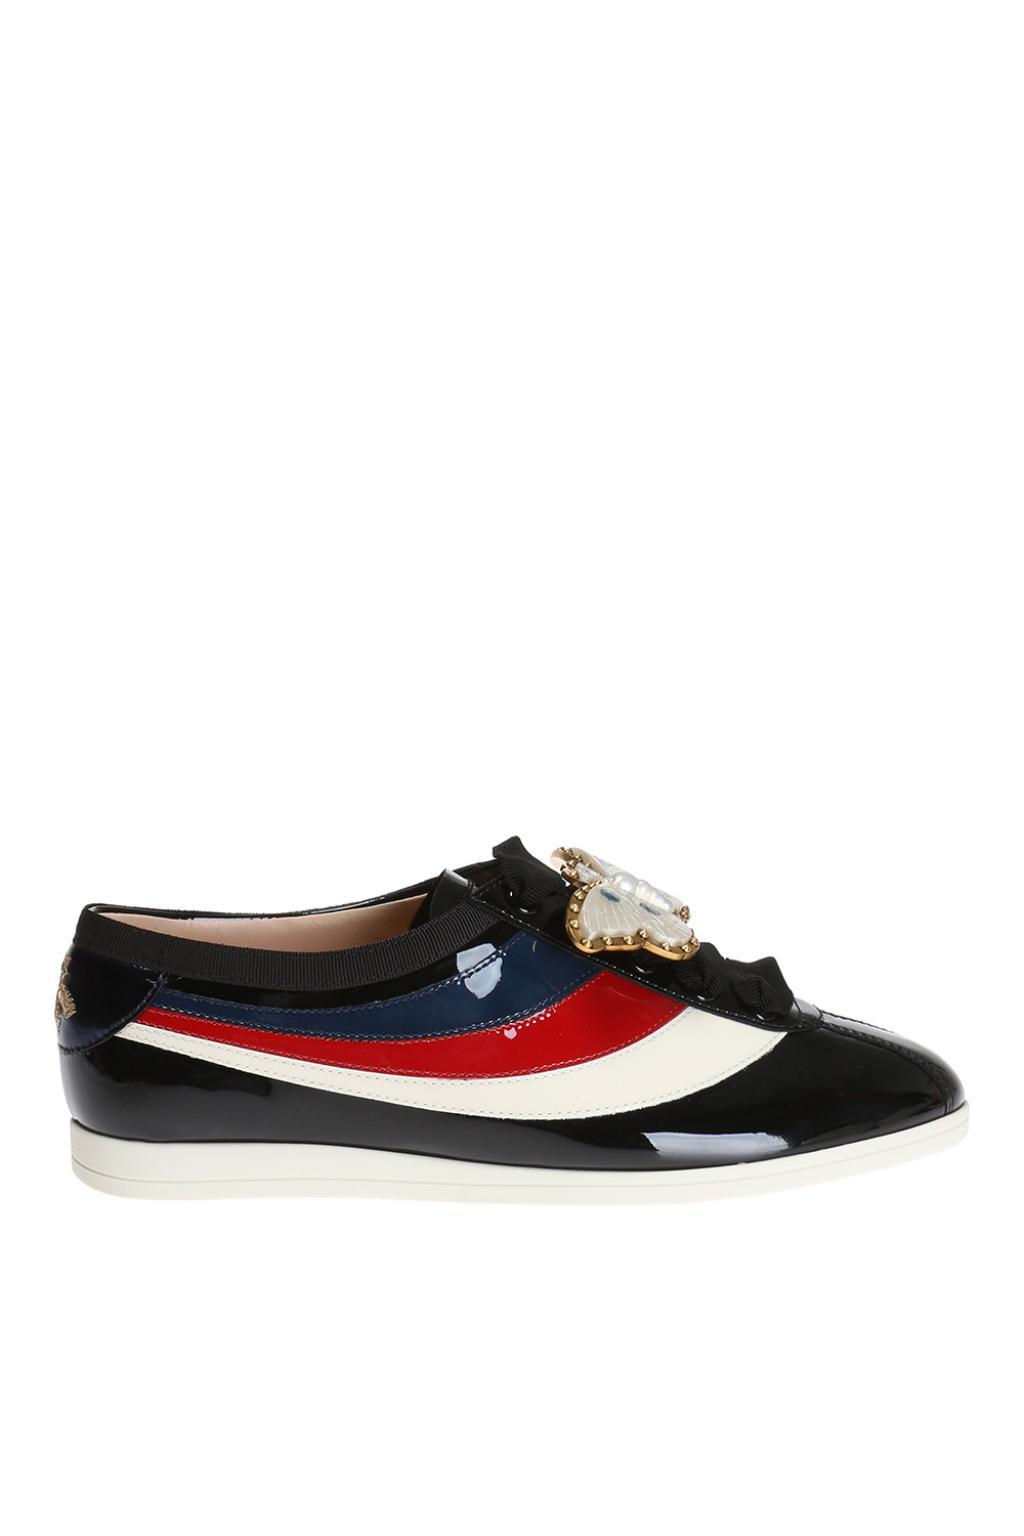 8c1e0a6b6d5 Gucci  falacer  Sneakers in Black - Save 38% - Lyst